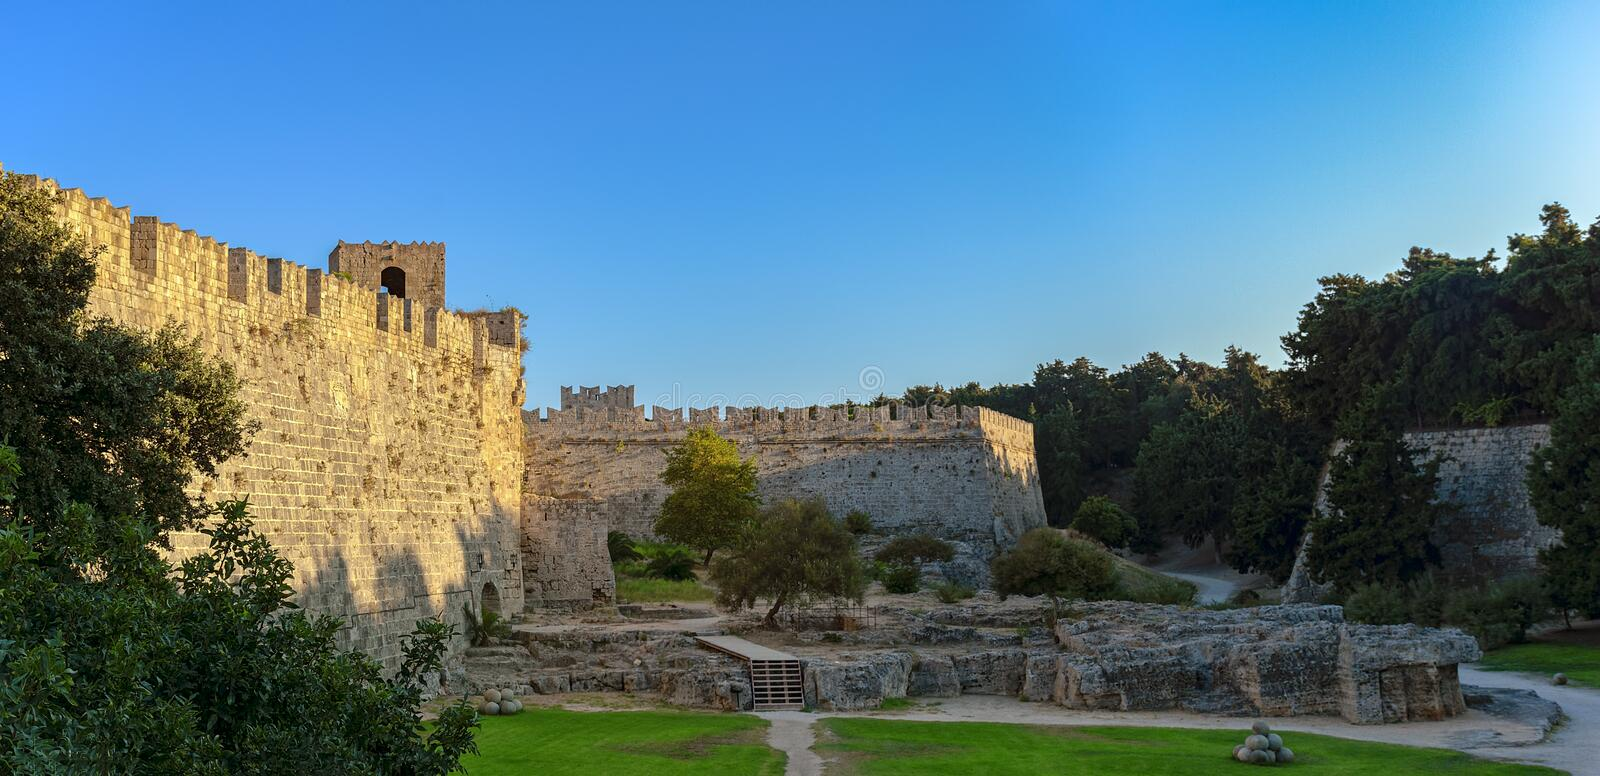 Walls of the fortress of the old town of Rhodes on the island of royalty free stock photo